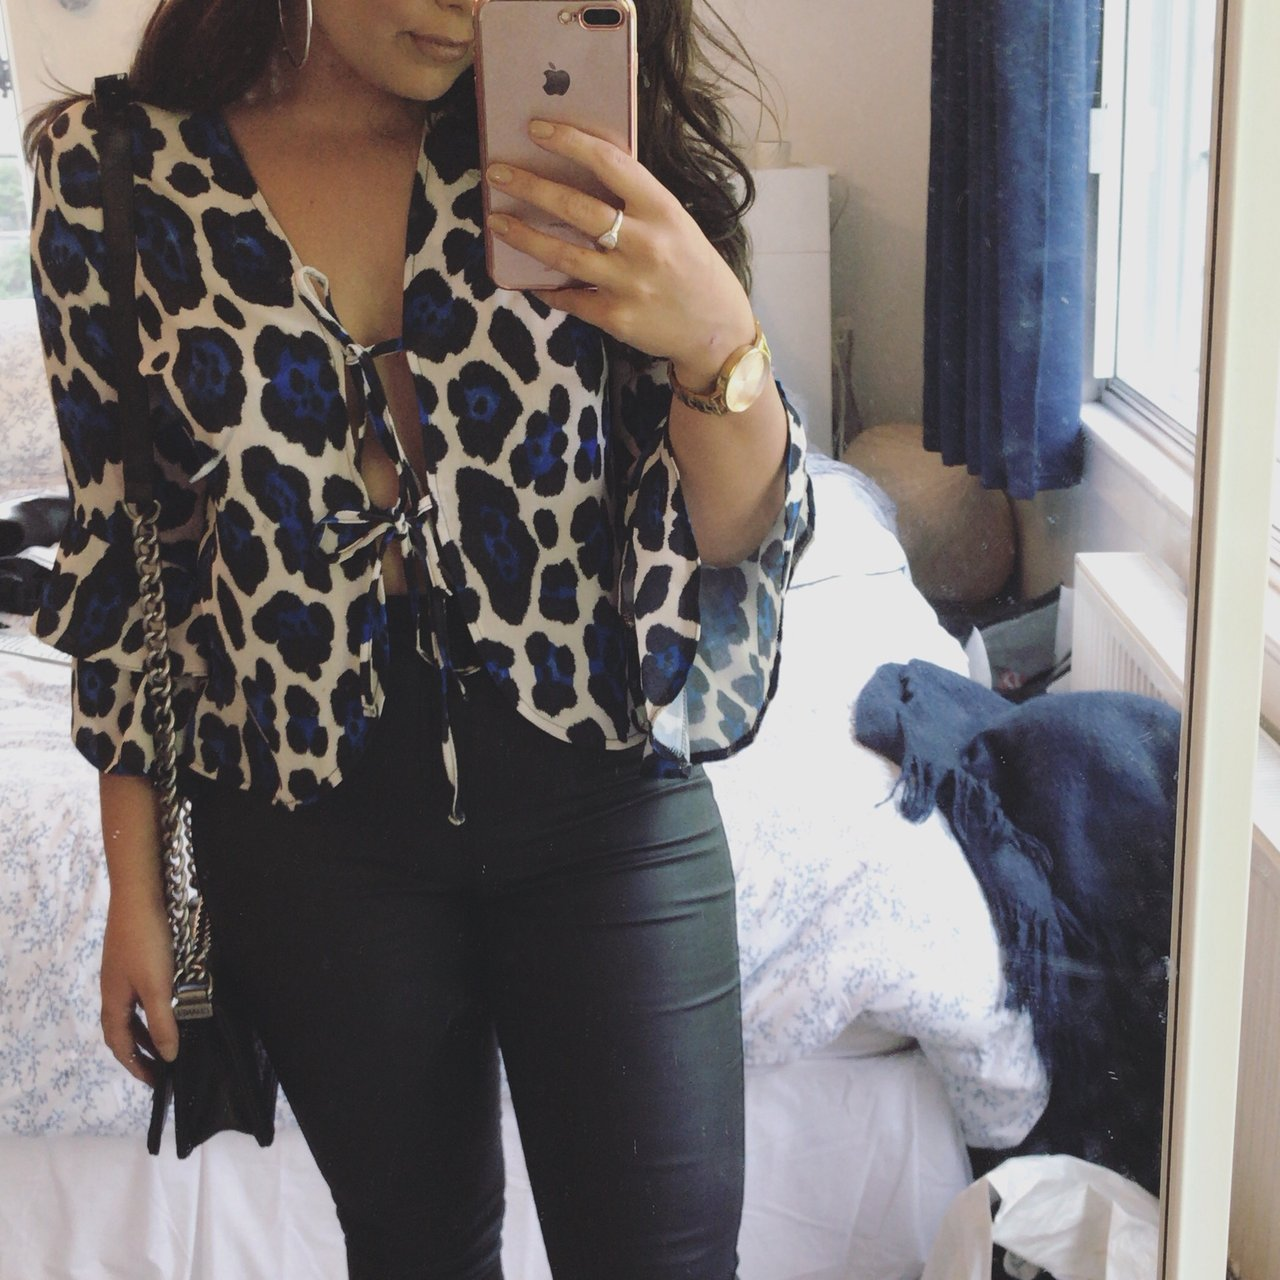 8a83c02402c8 Selling this blue and black leopard print top! Originally a - Depop